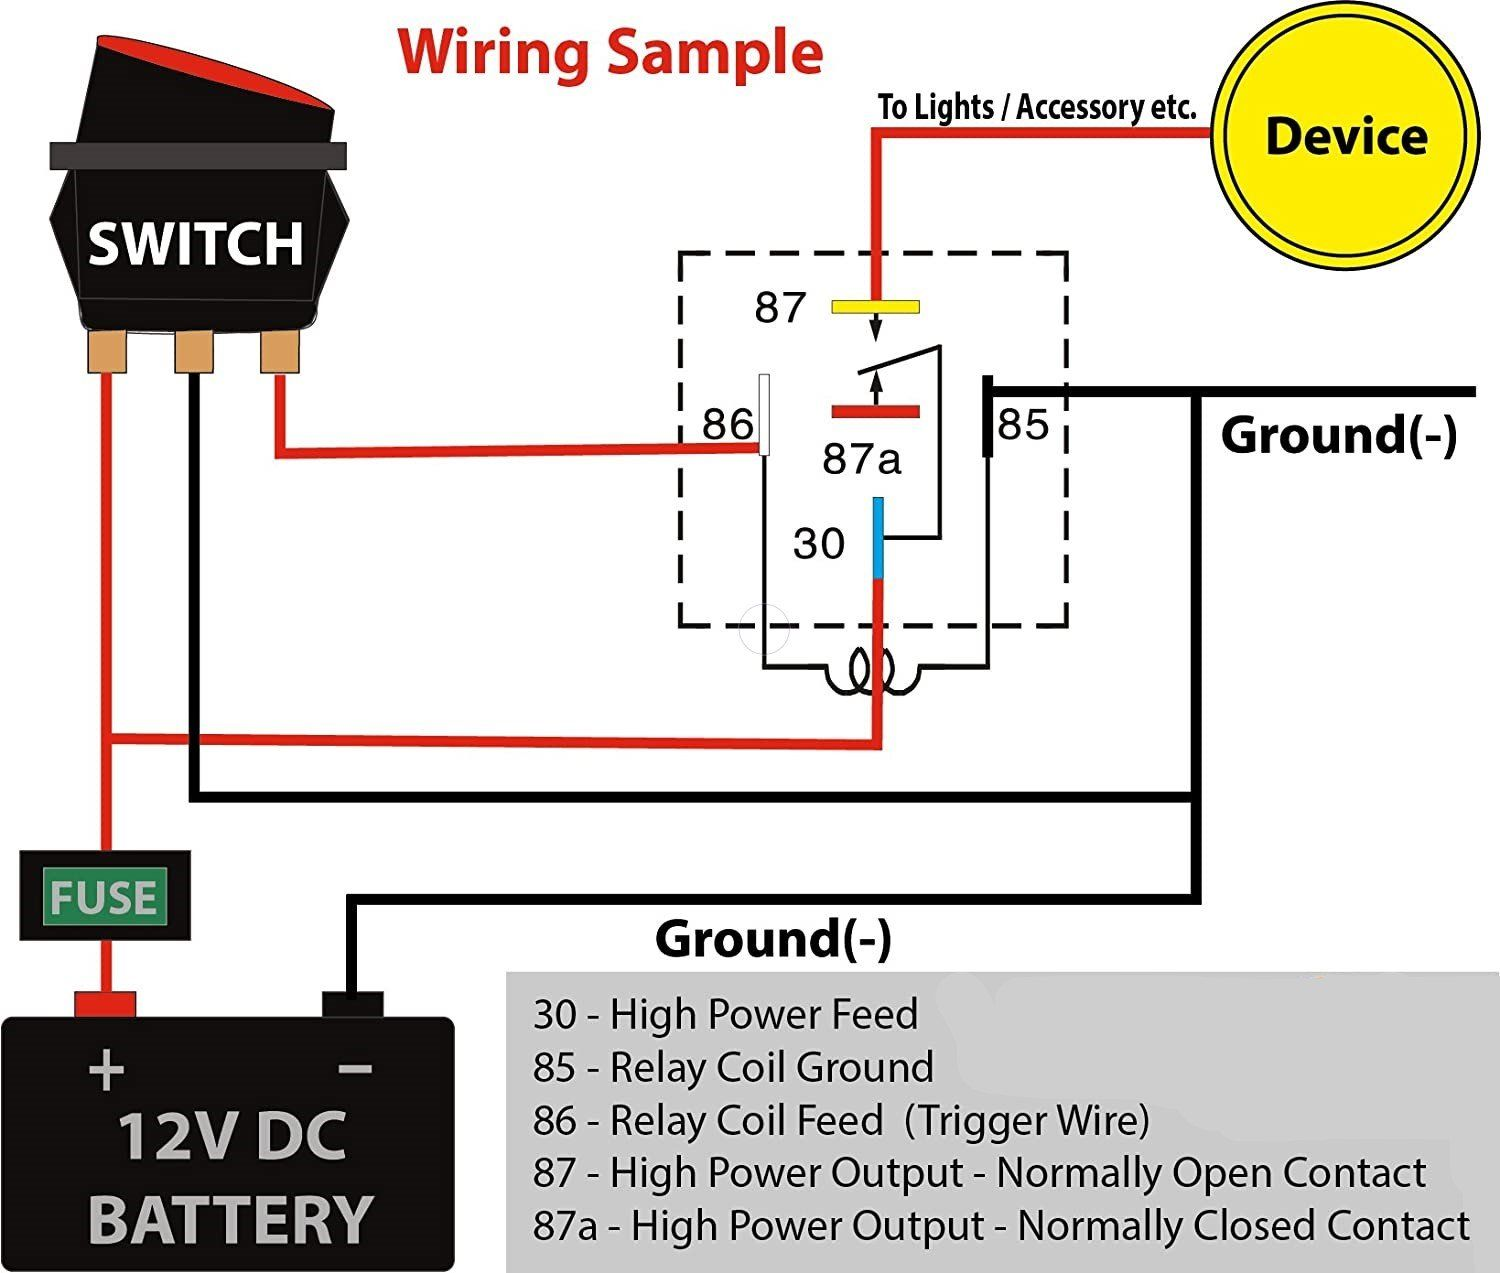 5 Absolute USA 12V 30/40 Amp SPDT Automotive Bosch / Tyco Style 5 Pin Relay  with Wires & Harness Socket in 2021 | Electrical circuit diagram, Relay, Electrical  wiring diagramPinterest